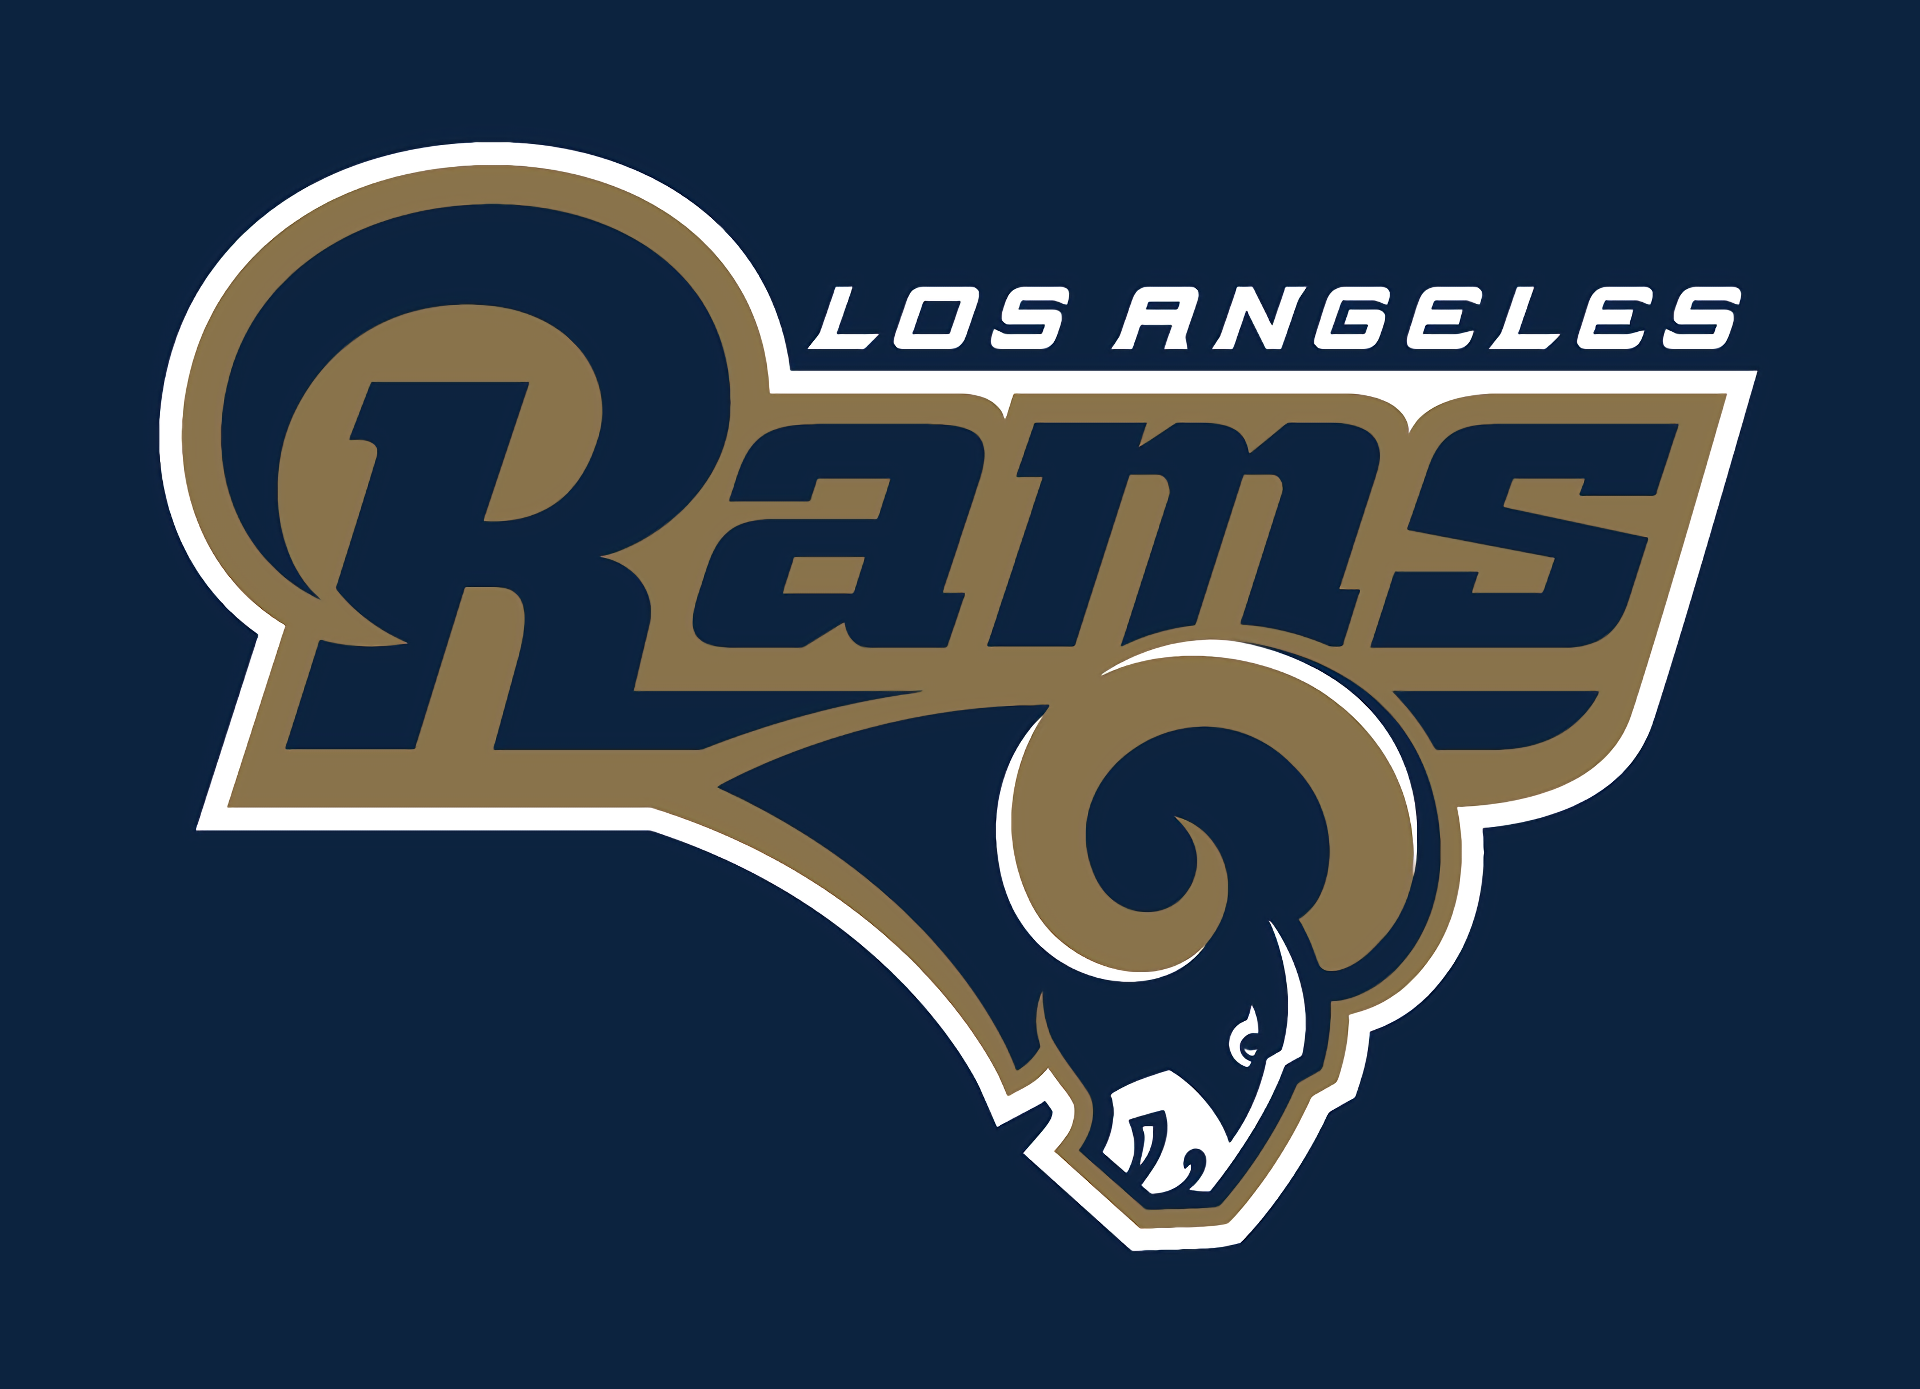 Los Angeles Rams Full HD Wallpaper And Background Image